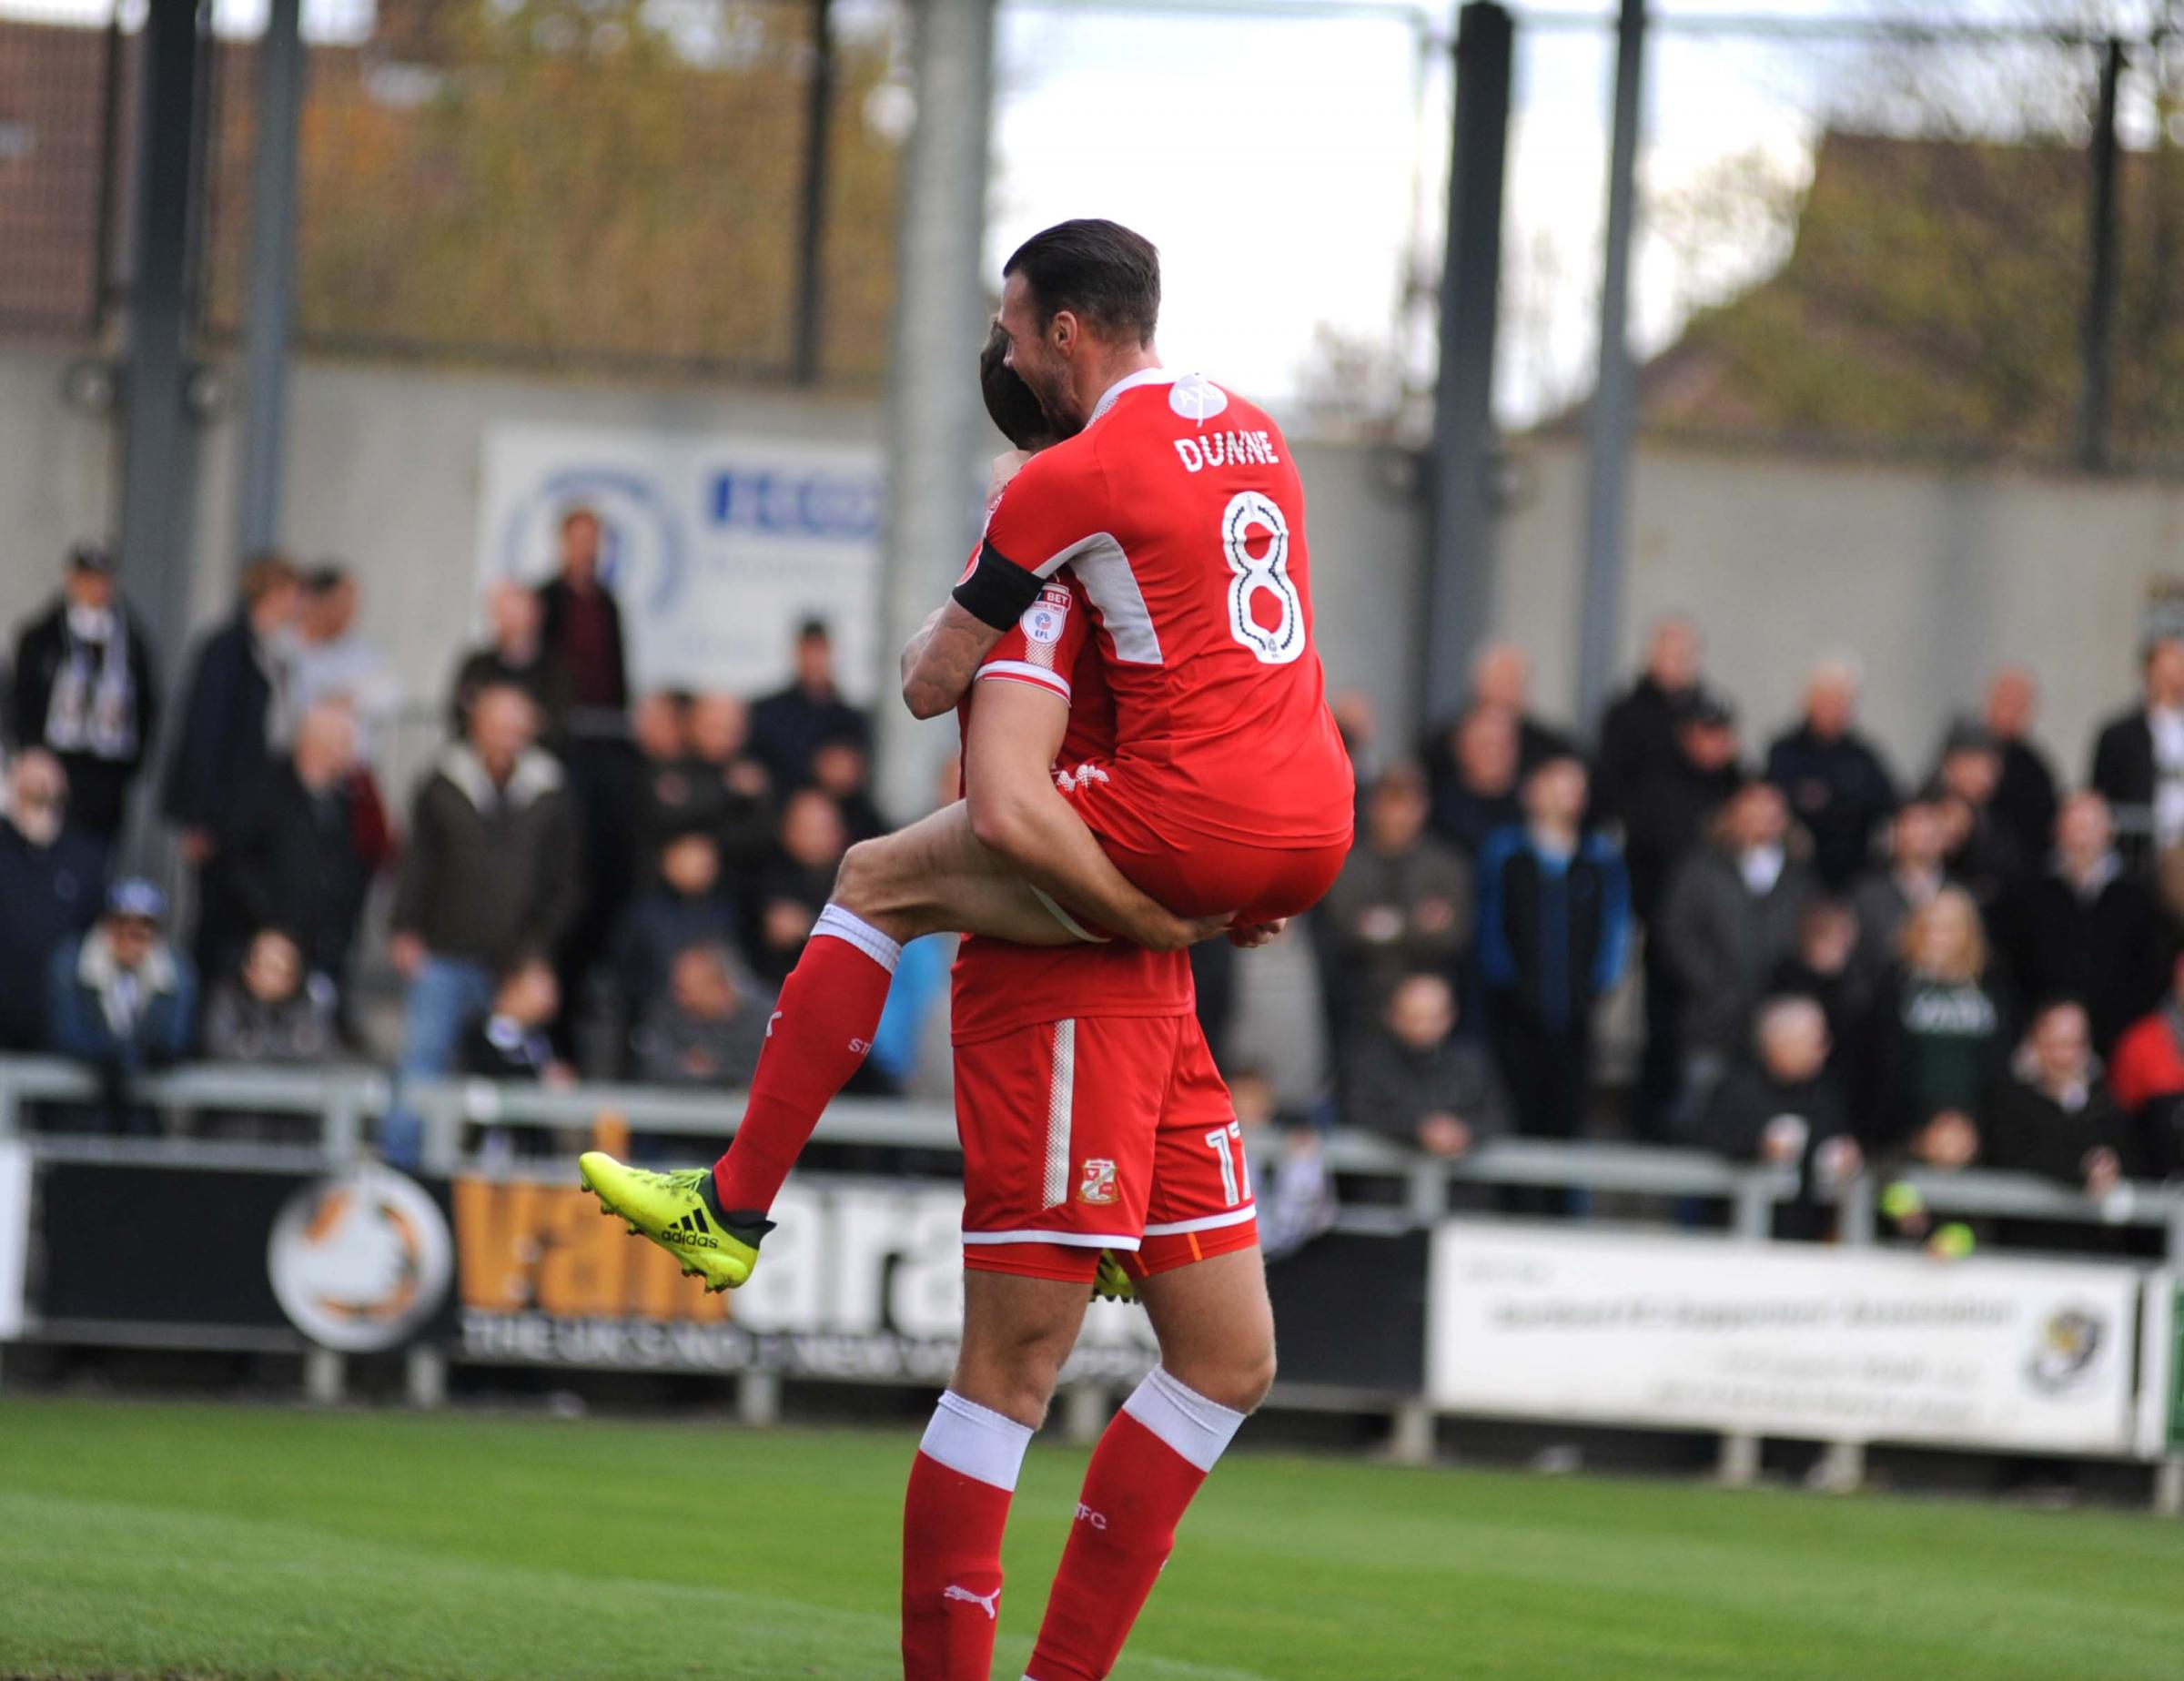 Swindon Town's James Dunne embraces Harry Smith after his goal at Dartford